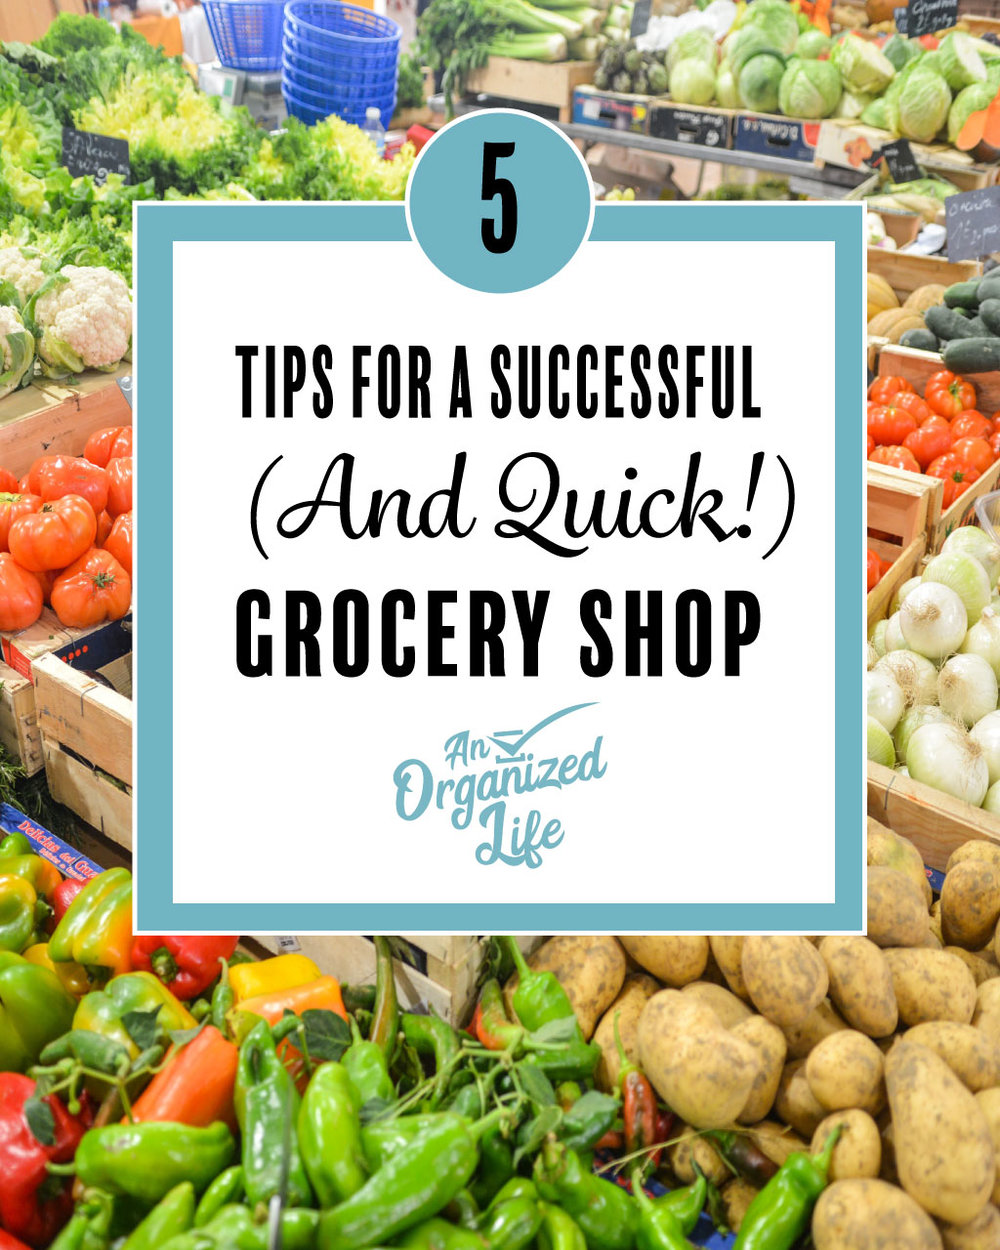 33fa6dc7341a 5 Tips for a Successful (and Quick!) Grocery Shop — An Organized Life